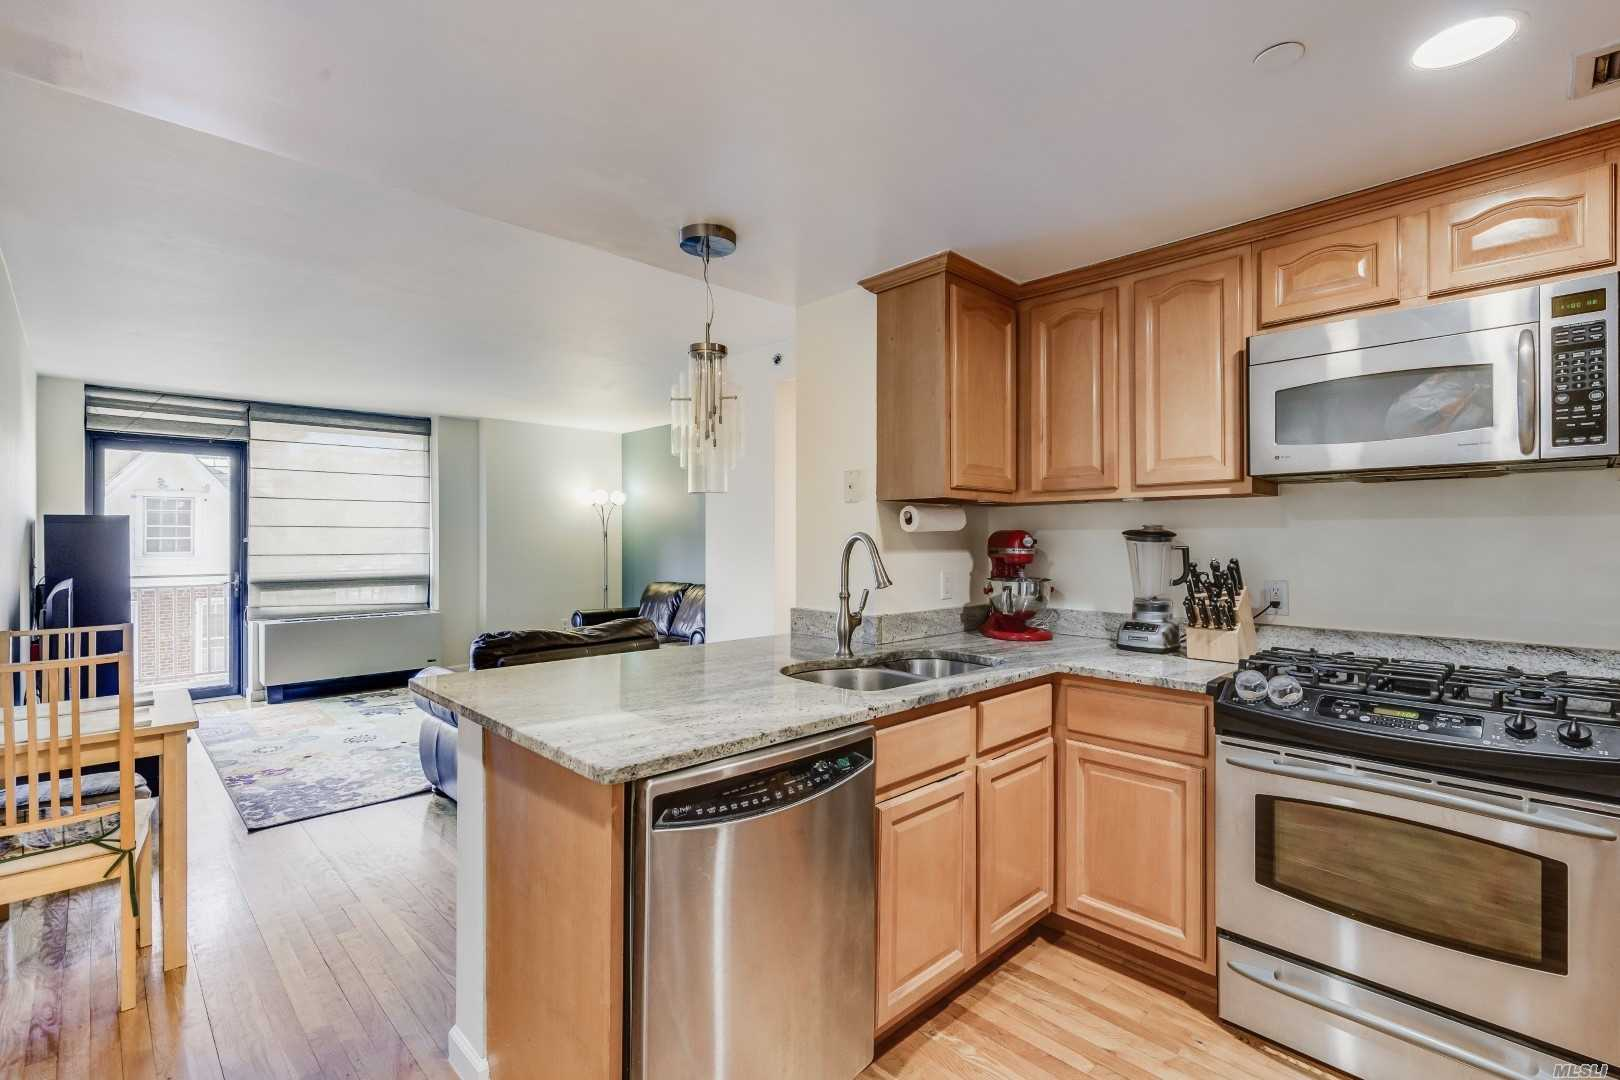 **Motivated Seller**Immaculate 3rd Fl Condo Offers A Private Terrace (126 Sqft) And Balcony With 2 Bedroom , Large full Bath, Granite Kitchen W/Breakfast Bar, Large Lr/Dr Combo, Hardwood Floors Throughout. Building Offers Laundry, Door Man, Gym, Event Room & An Outdoor Rooftop Deck W/Garden Area On 3rd Floor. Steps Away From Dining, Shopping, Entertainment, Buses Q57, Q54, Forest Park & Transportation Lirr And J, Z, M, R, E, F Trains. Commuters Dream!**Currently No Wait For Spot in Public Garage**